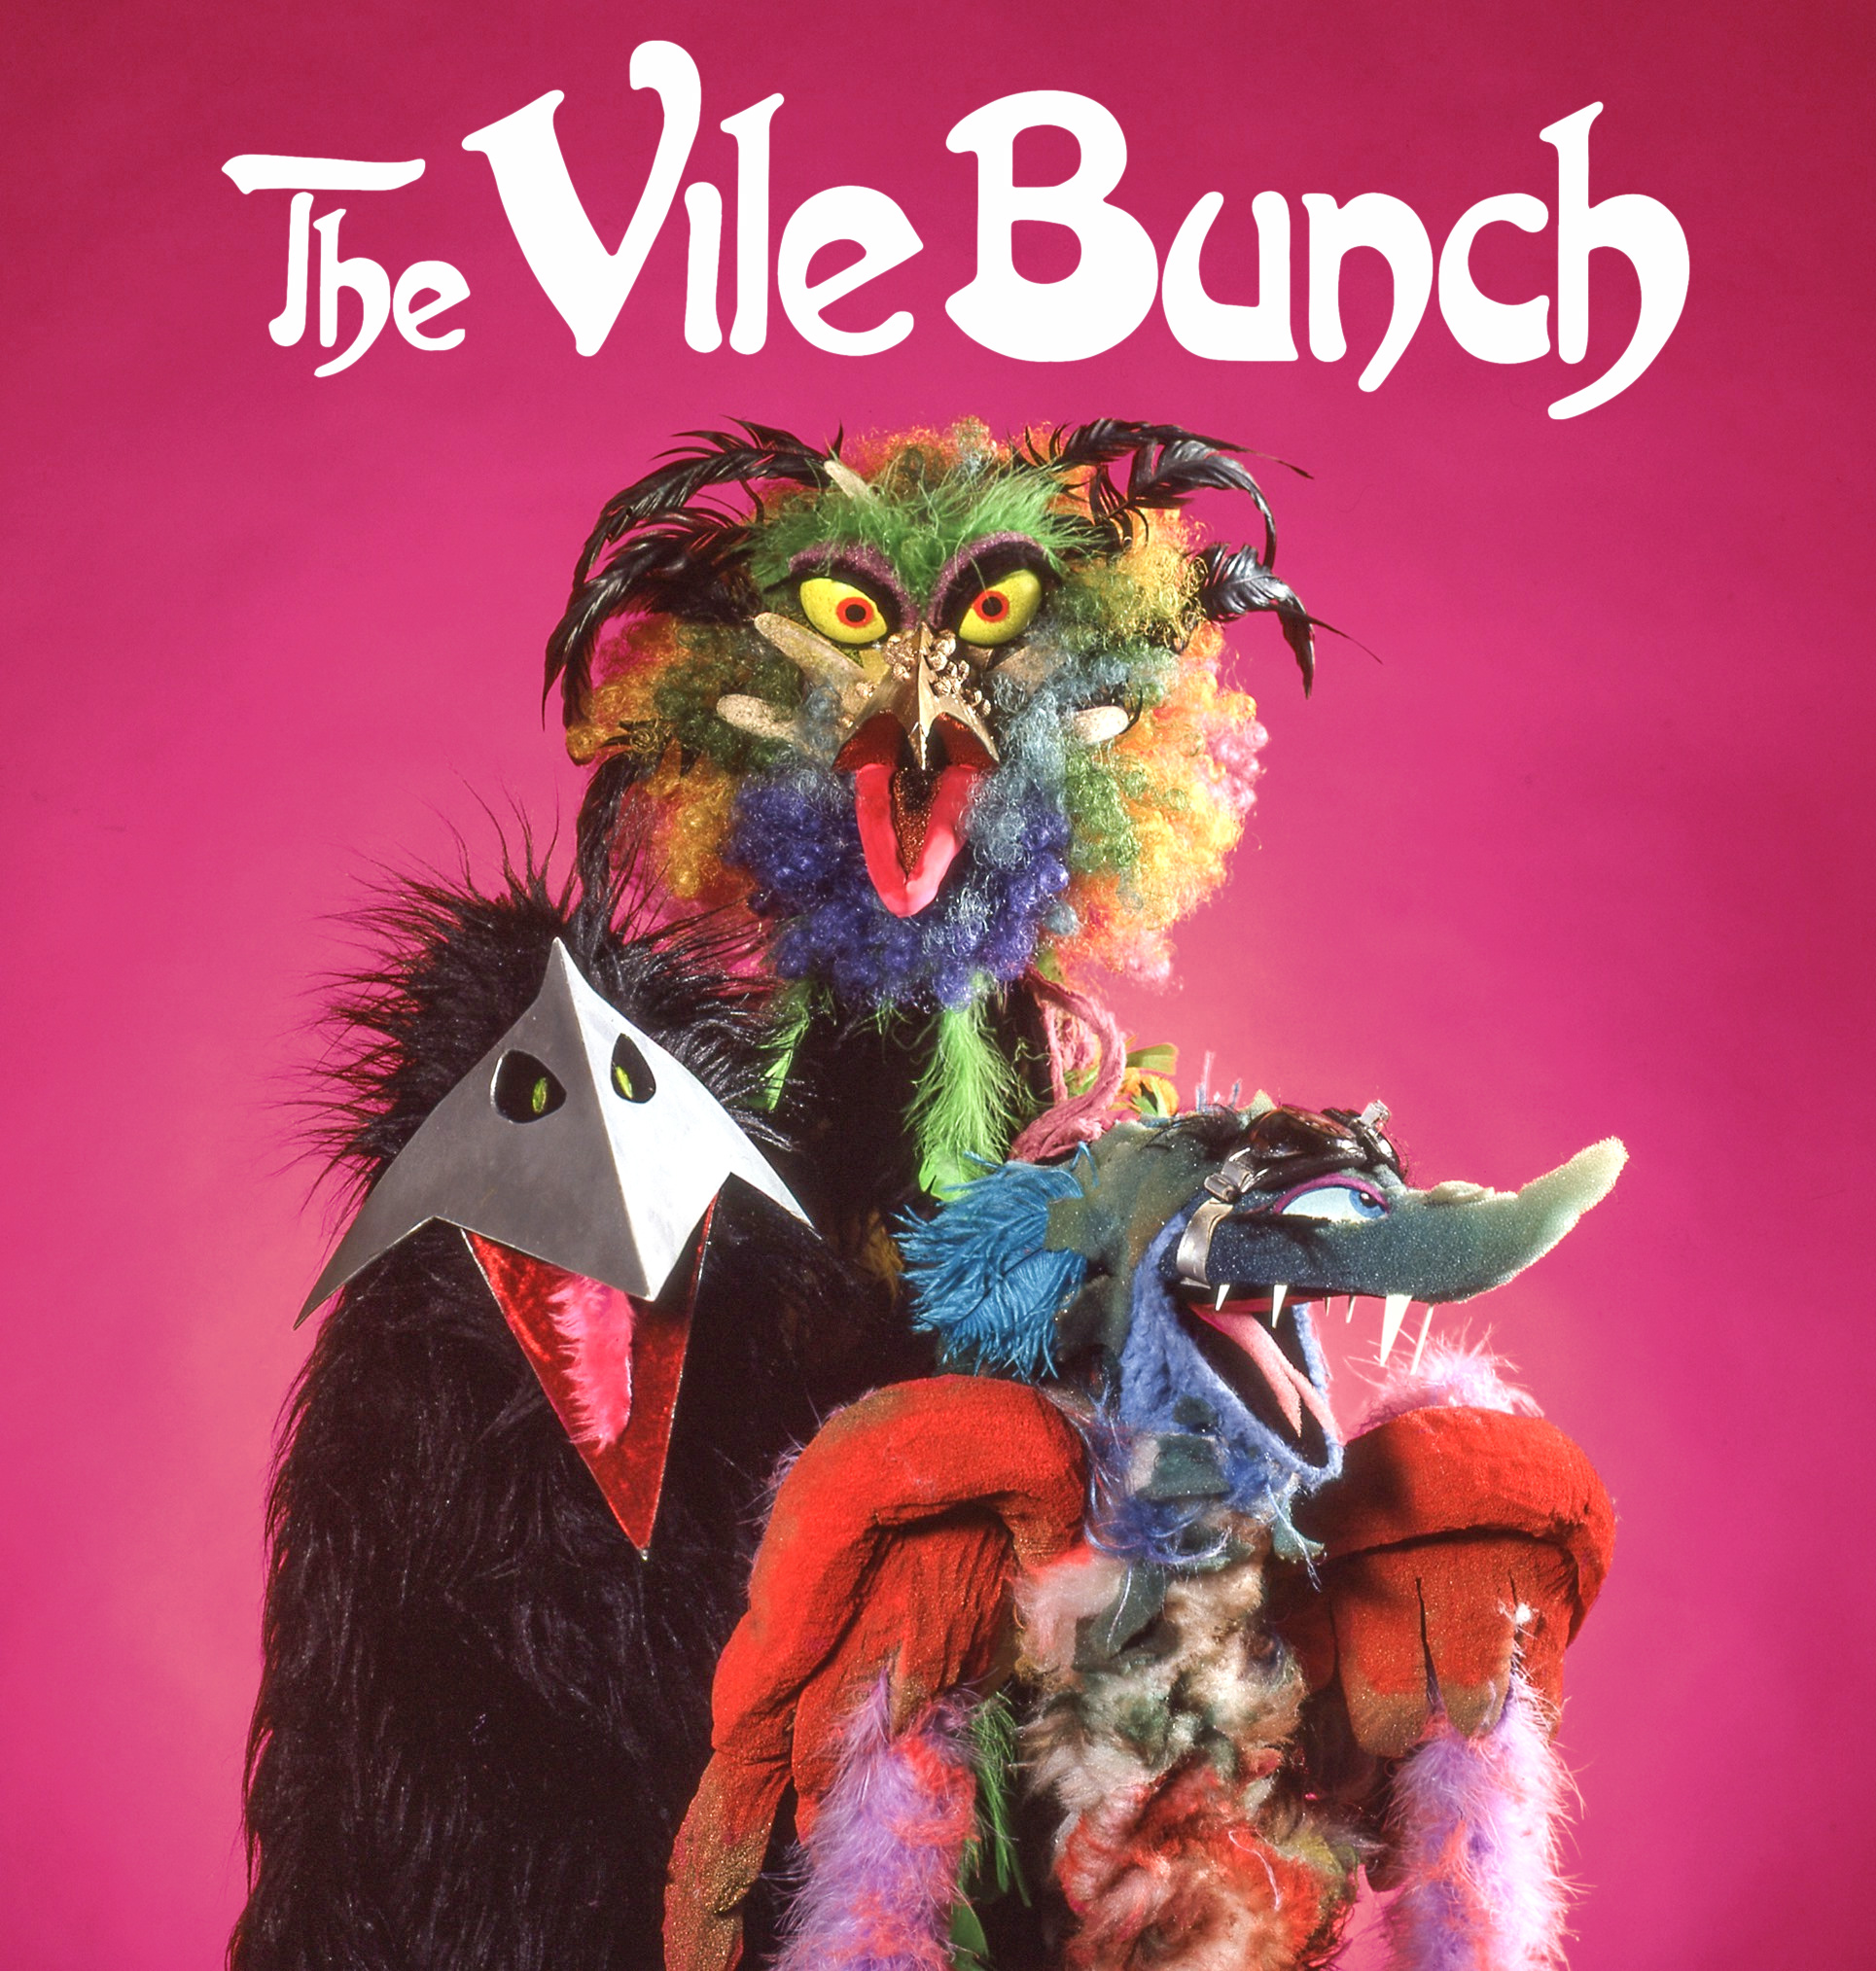 The Vile Bunch Muppet Wiki